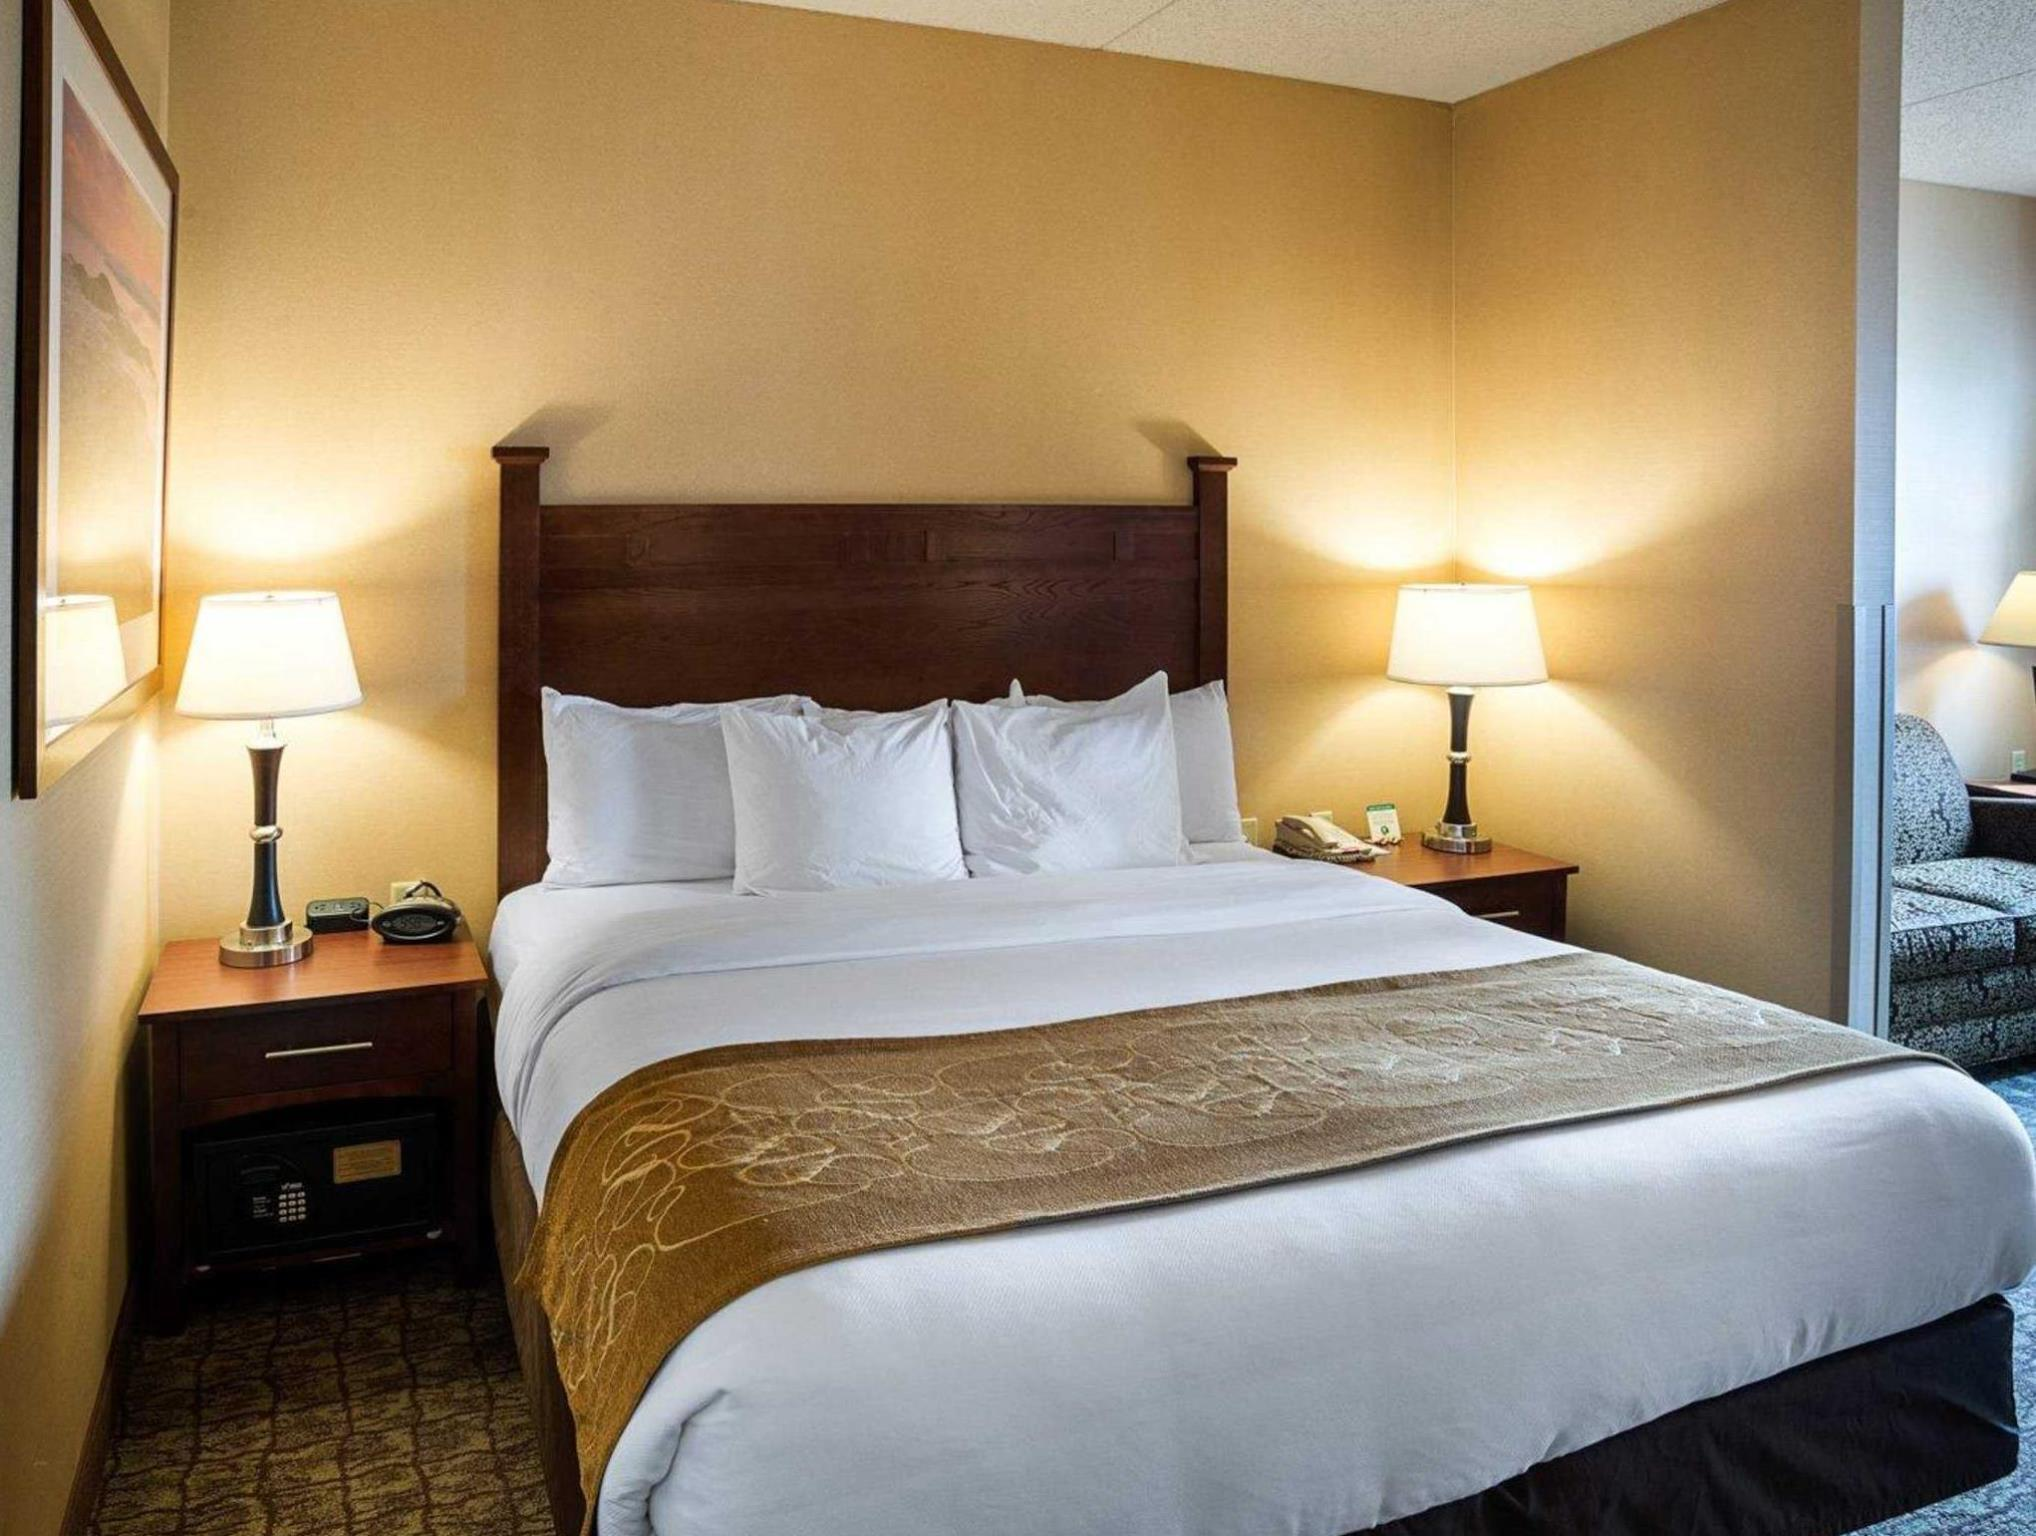 suite suites bloomington romantic extended stay bedroom mn hotels america towneplace clsc hor hot travel mall tub msptb minneapolis of